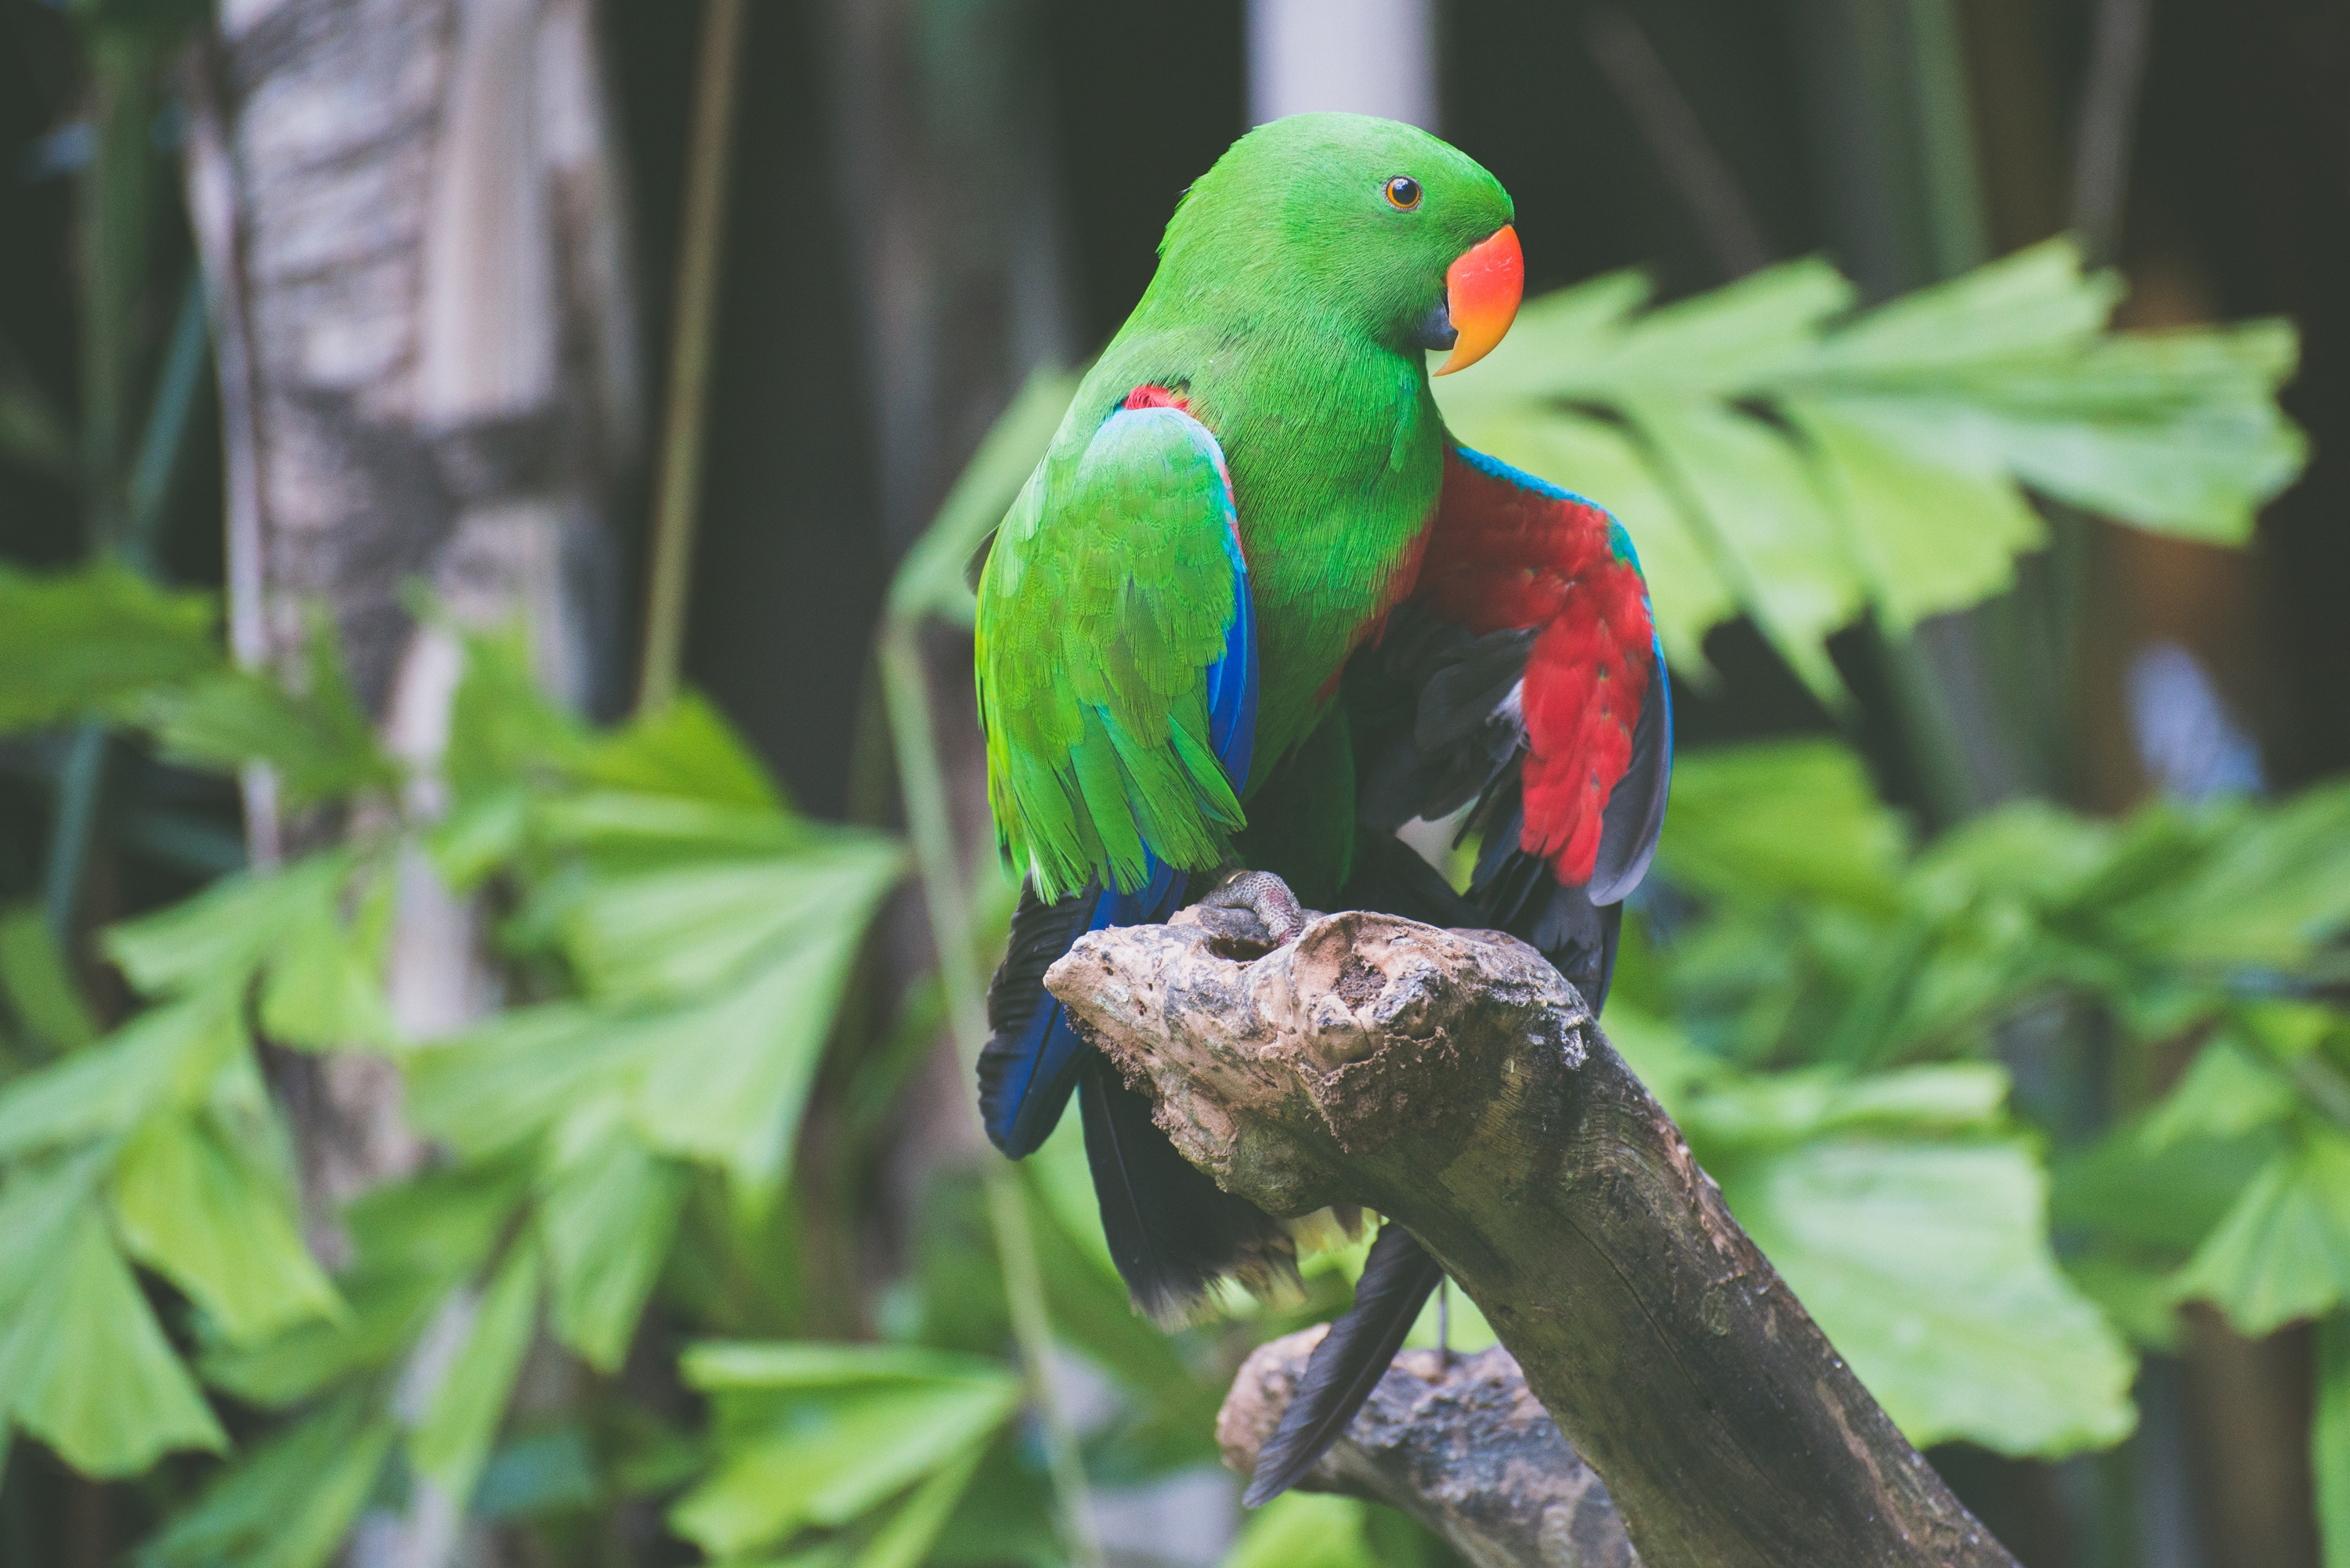 109853 download wallpaper Animals, Parrots, Color, Birds screensavers and pictures for free